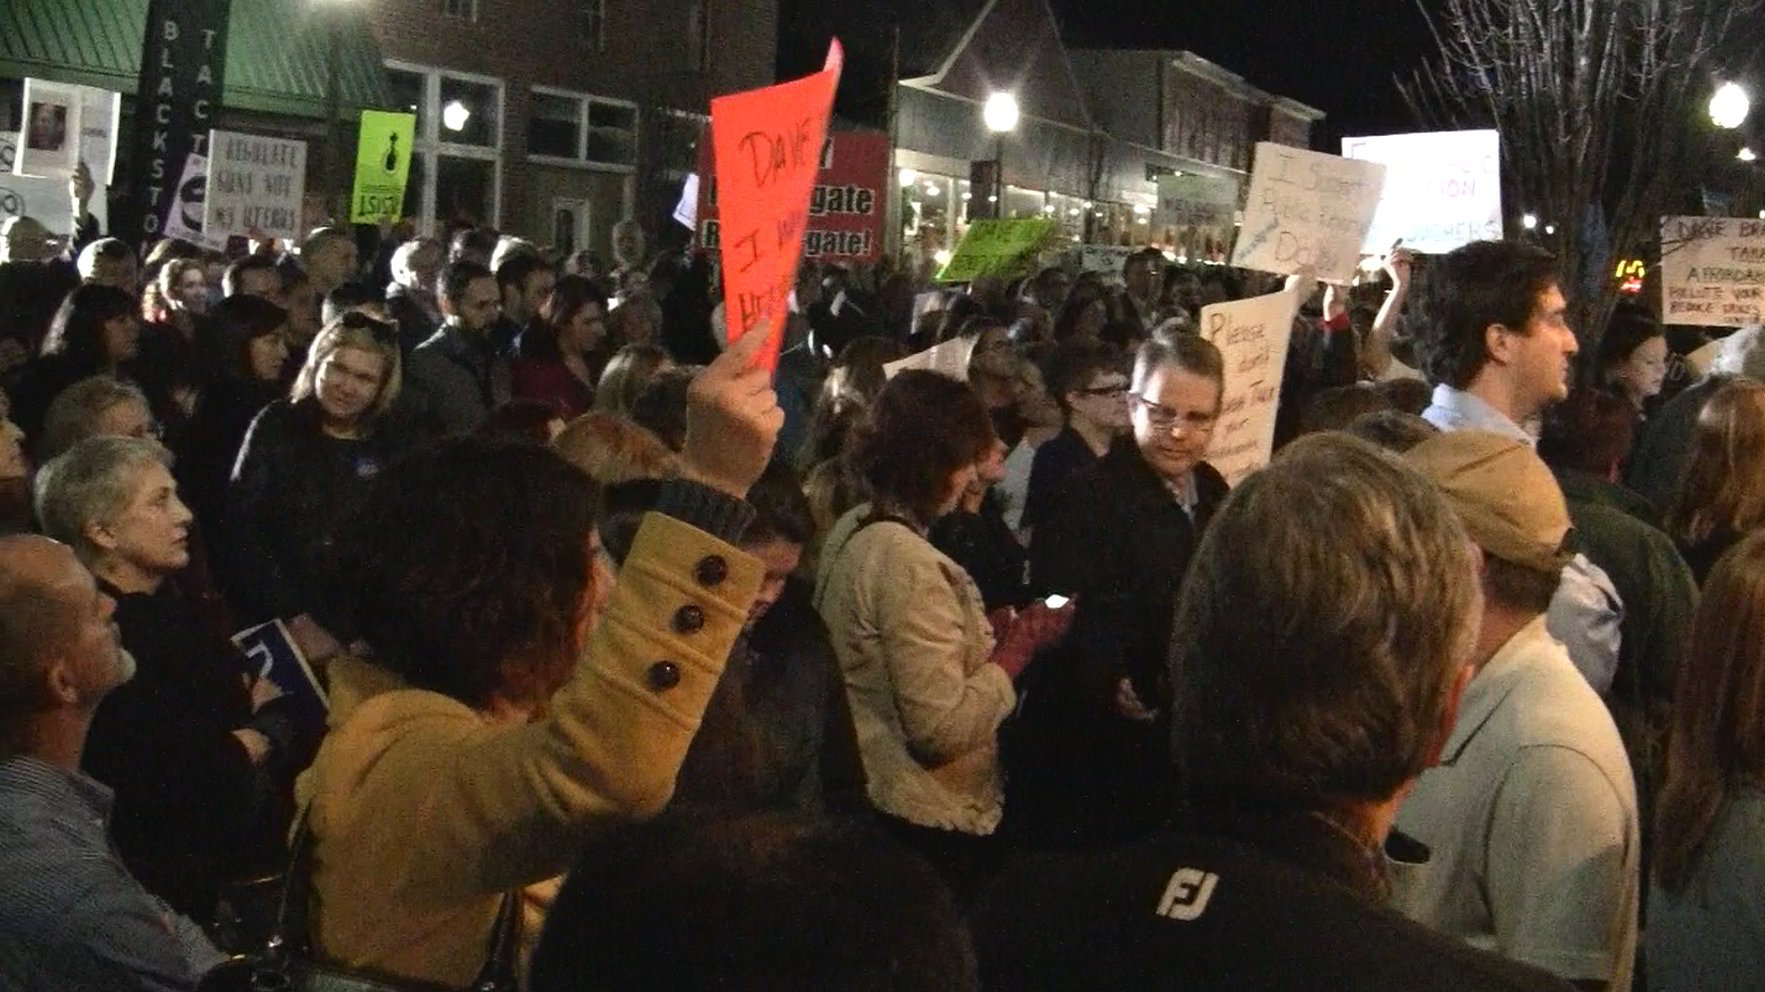 Comcast support rtp - Unruly Disrespectful Leftist Protest Mob Descends On Blackstone Town Hall With Rep Dave Brat